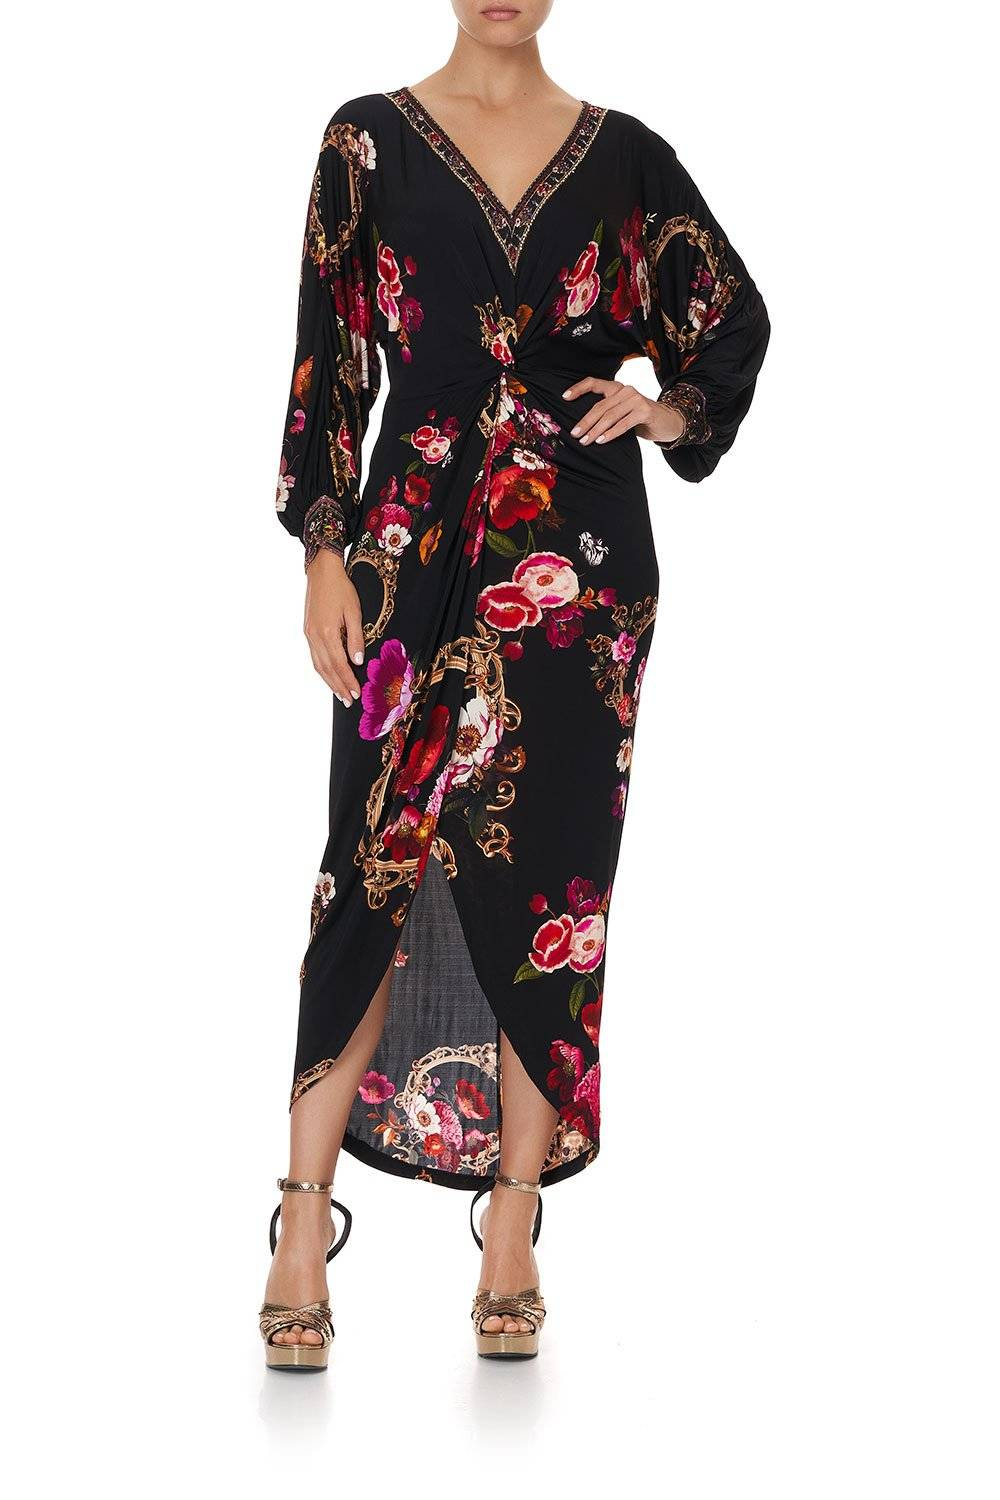 CAMILLA black midi dress with pink and red flowers.